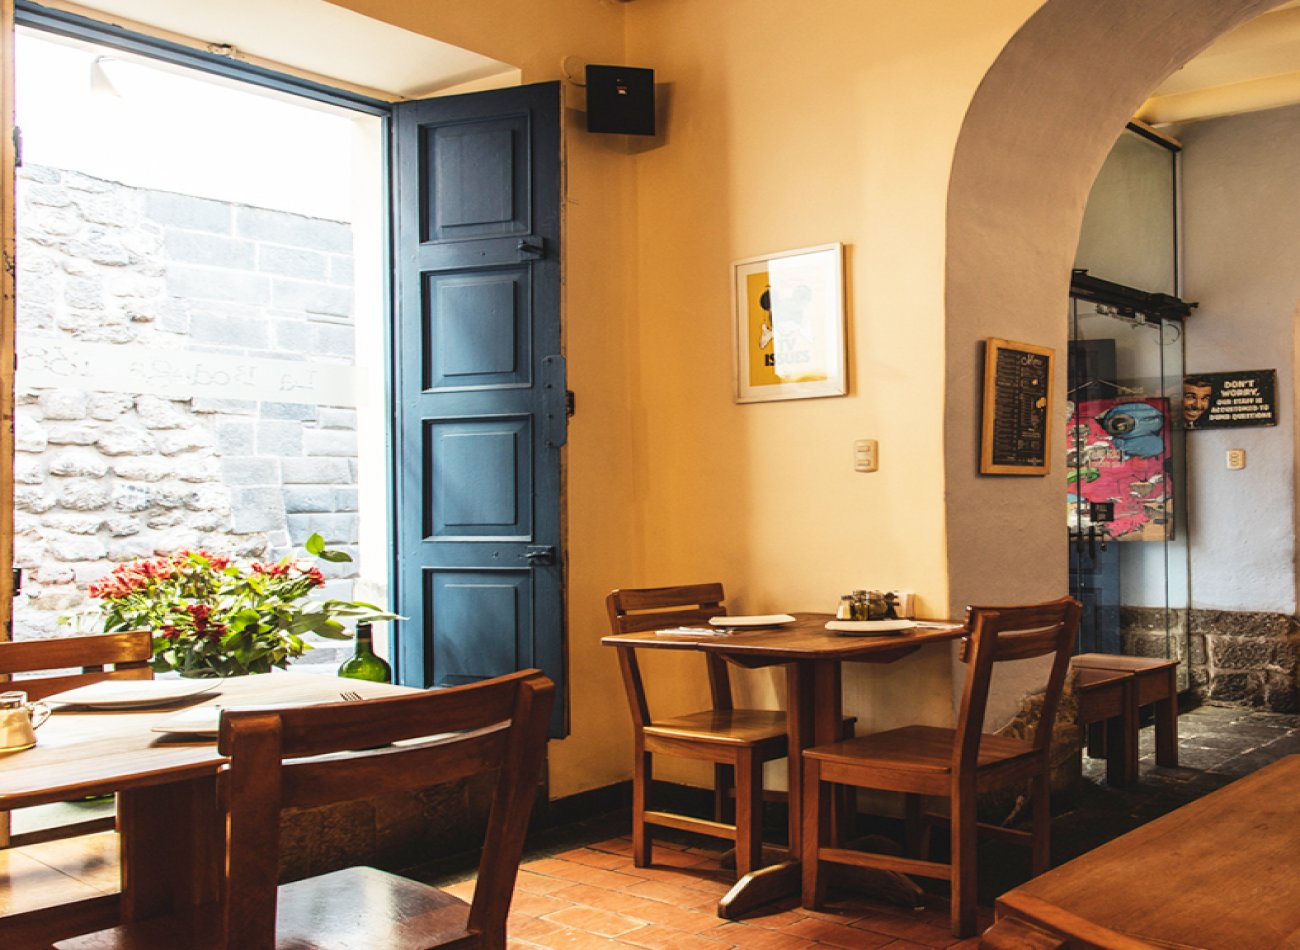 LA BODEGA 138 Restaurant - and Peruvian Food ITALIAN - CUSCO - MESA 24/7 Guide | CUSCO - Peru